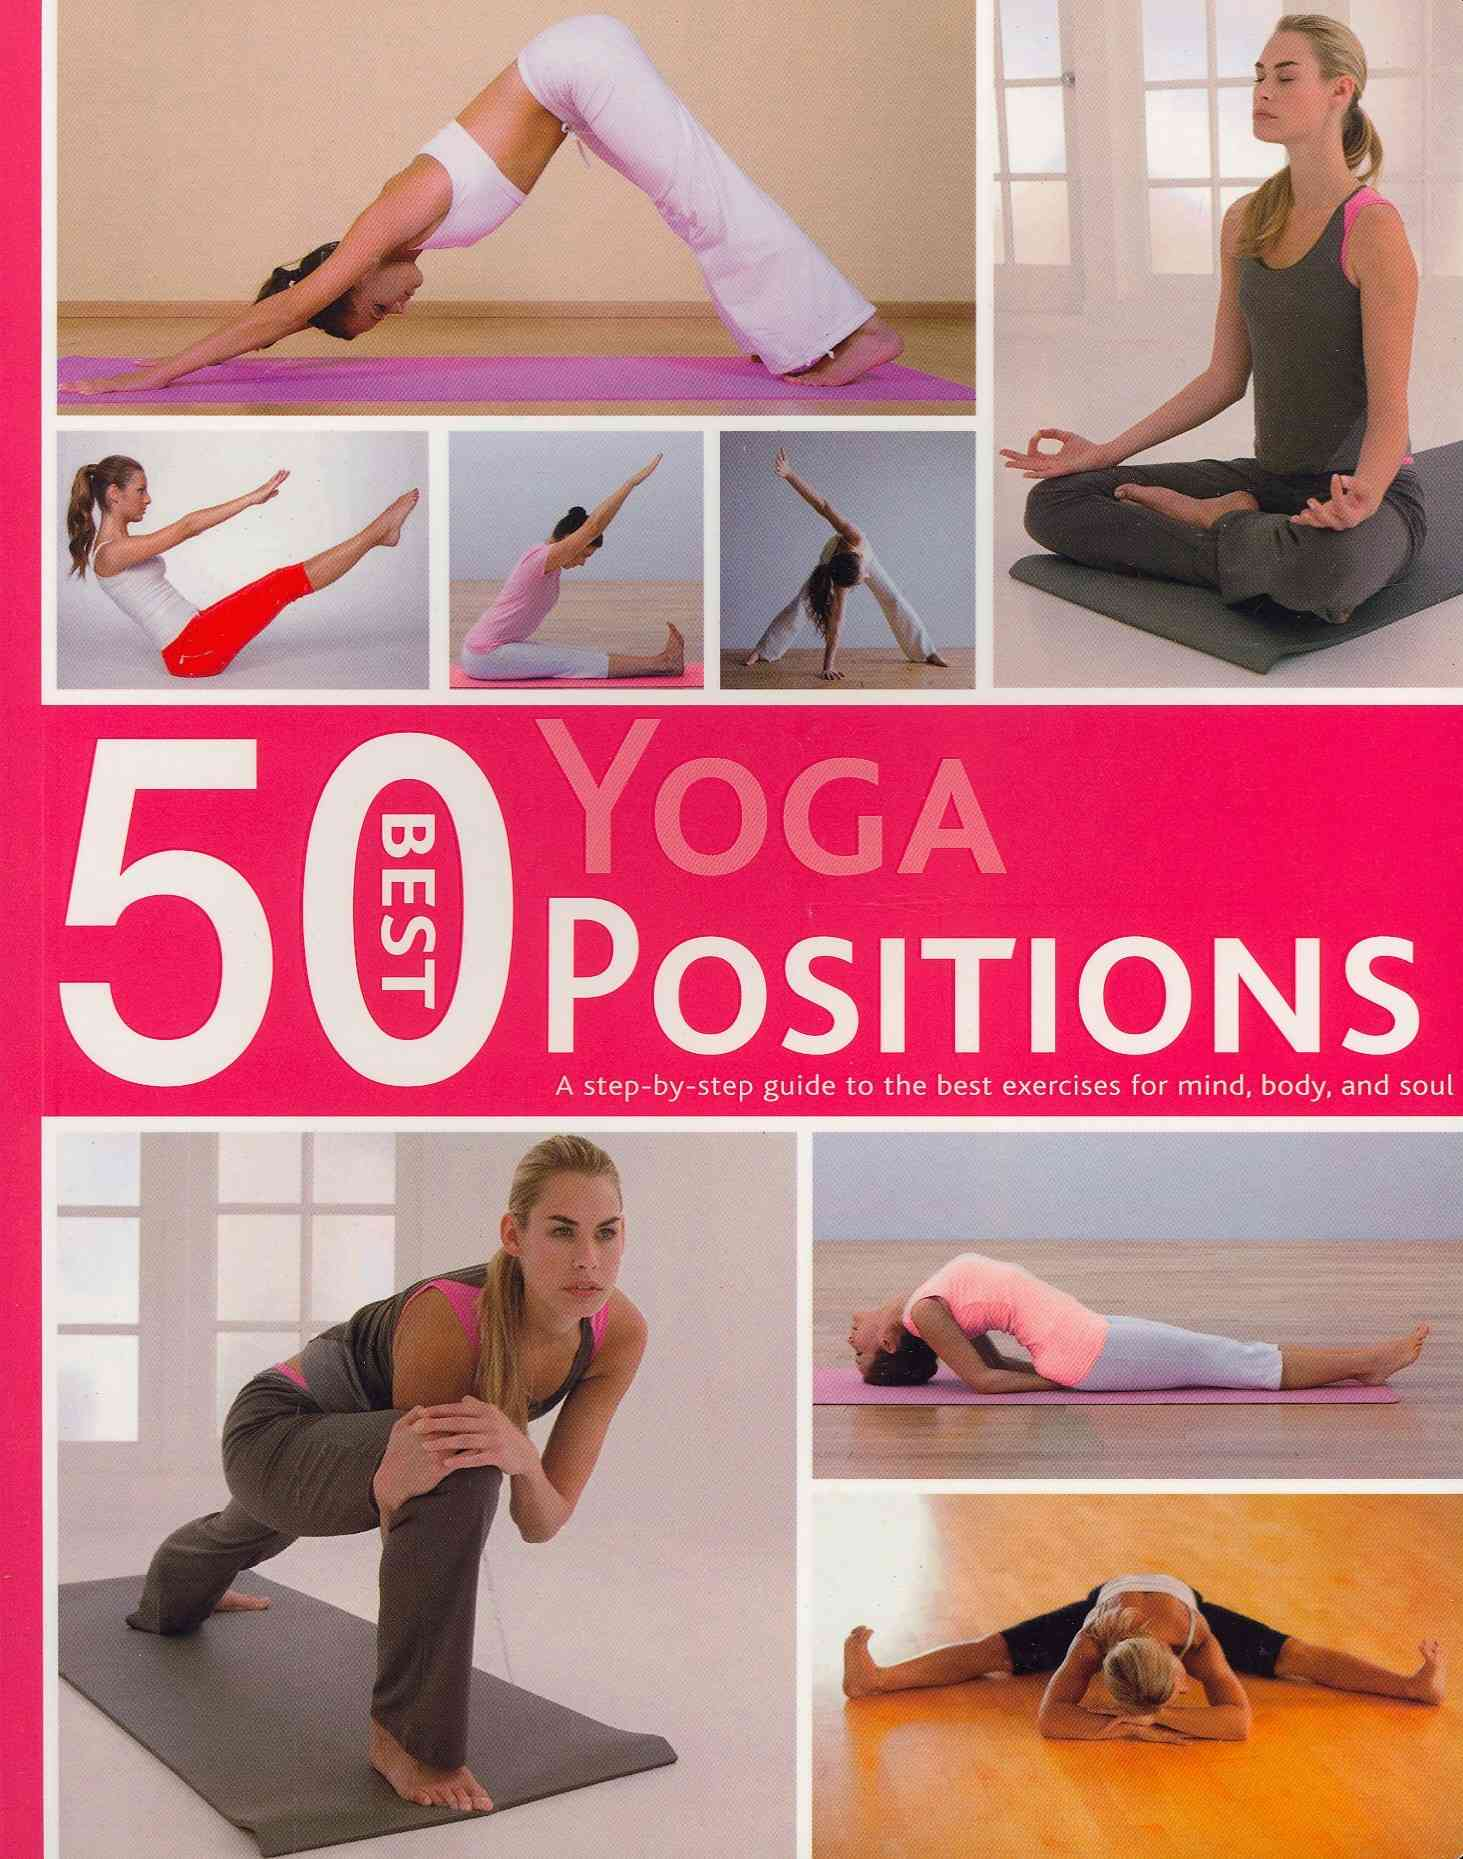 50 Best Yoga Positions: A Step-by-step Guide to the Best Exercises for Mind, Body, and Soul (Paperback)